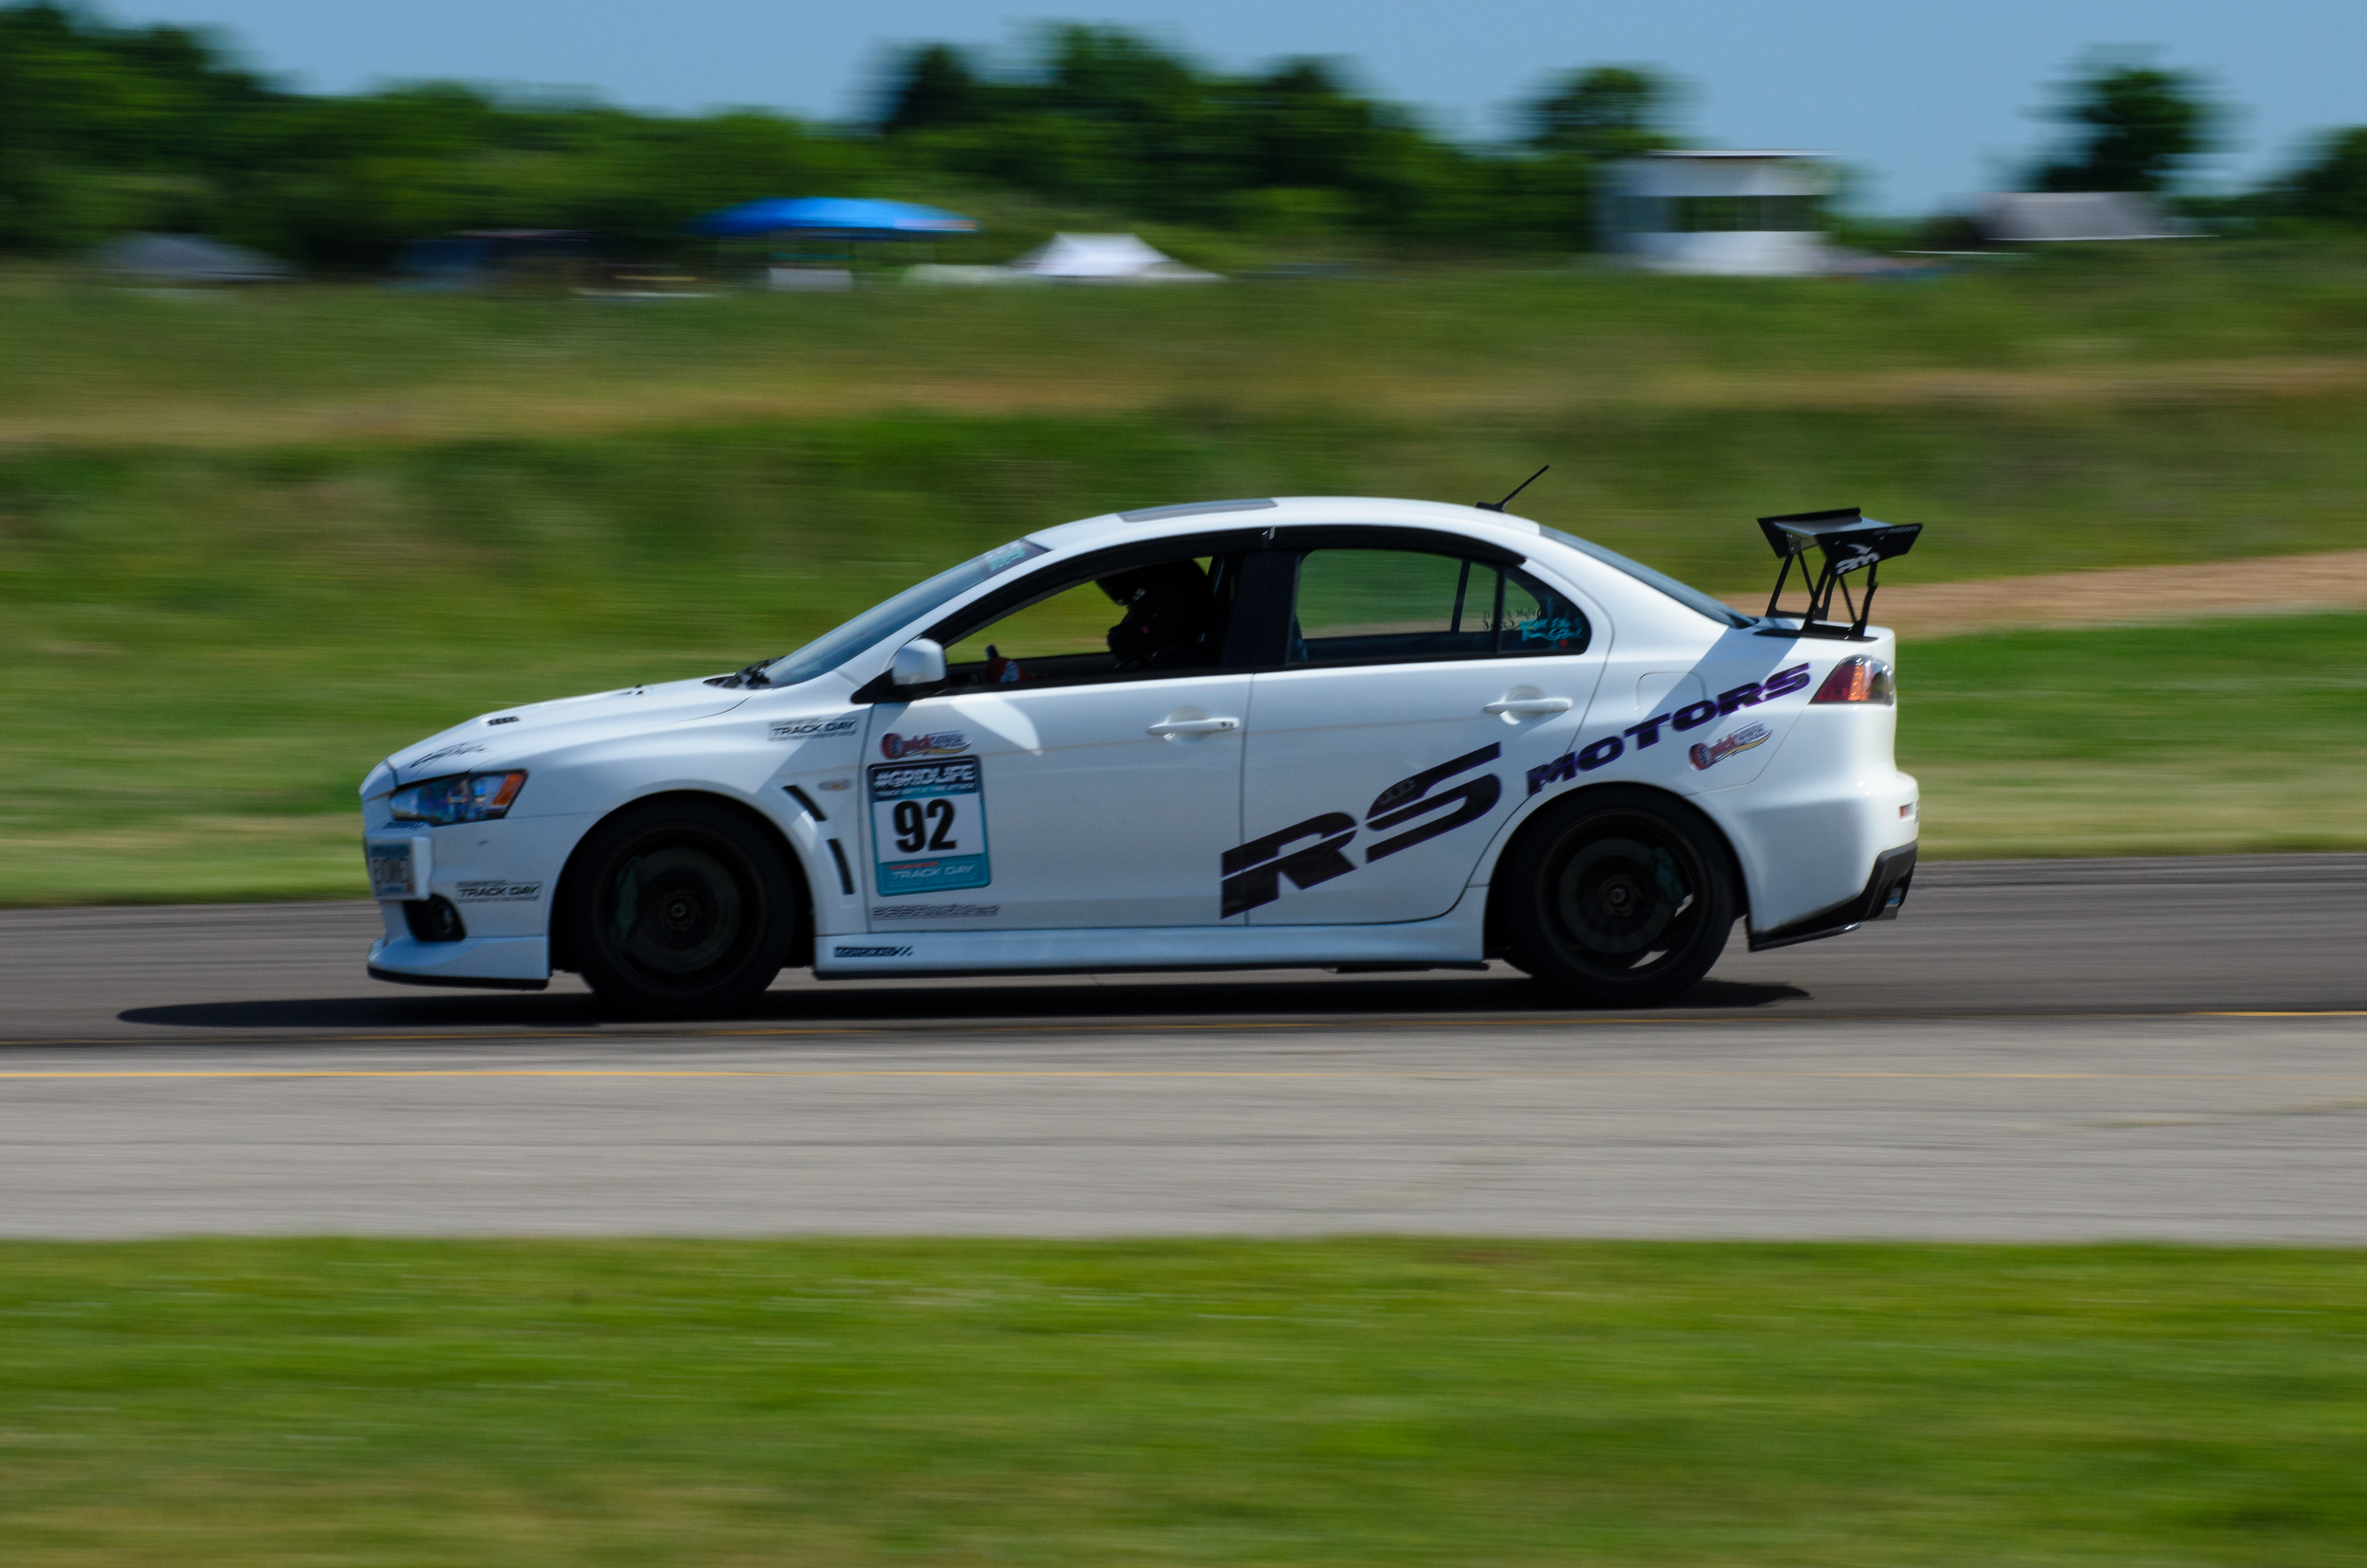 RS Motors  with another fast Evo, Thats starting to be a catch phrase. Maybe even a hashtag. This evo X clocked in a 1:41.066 #RSevo